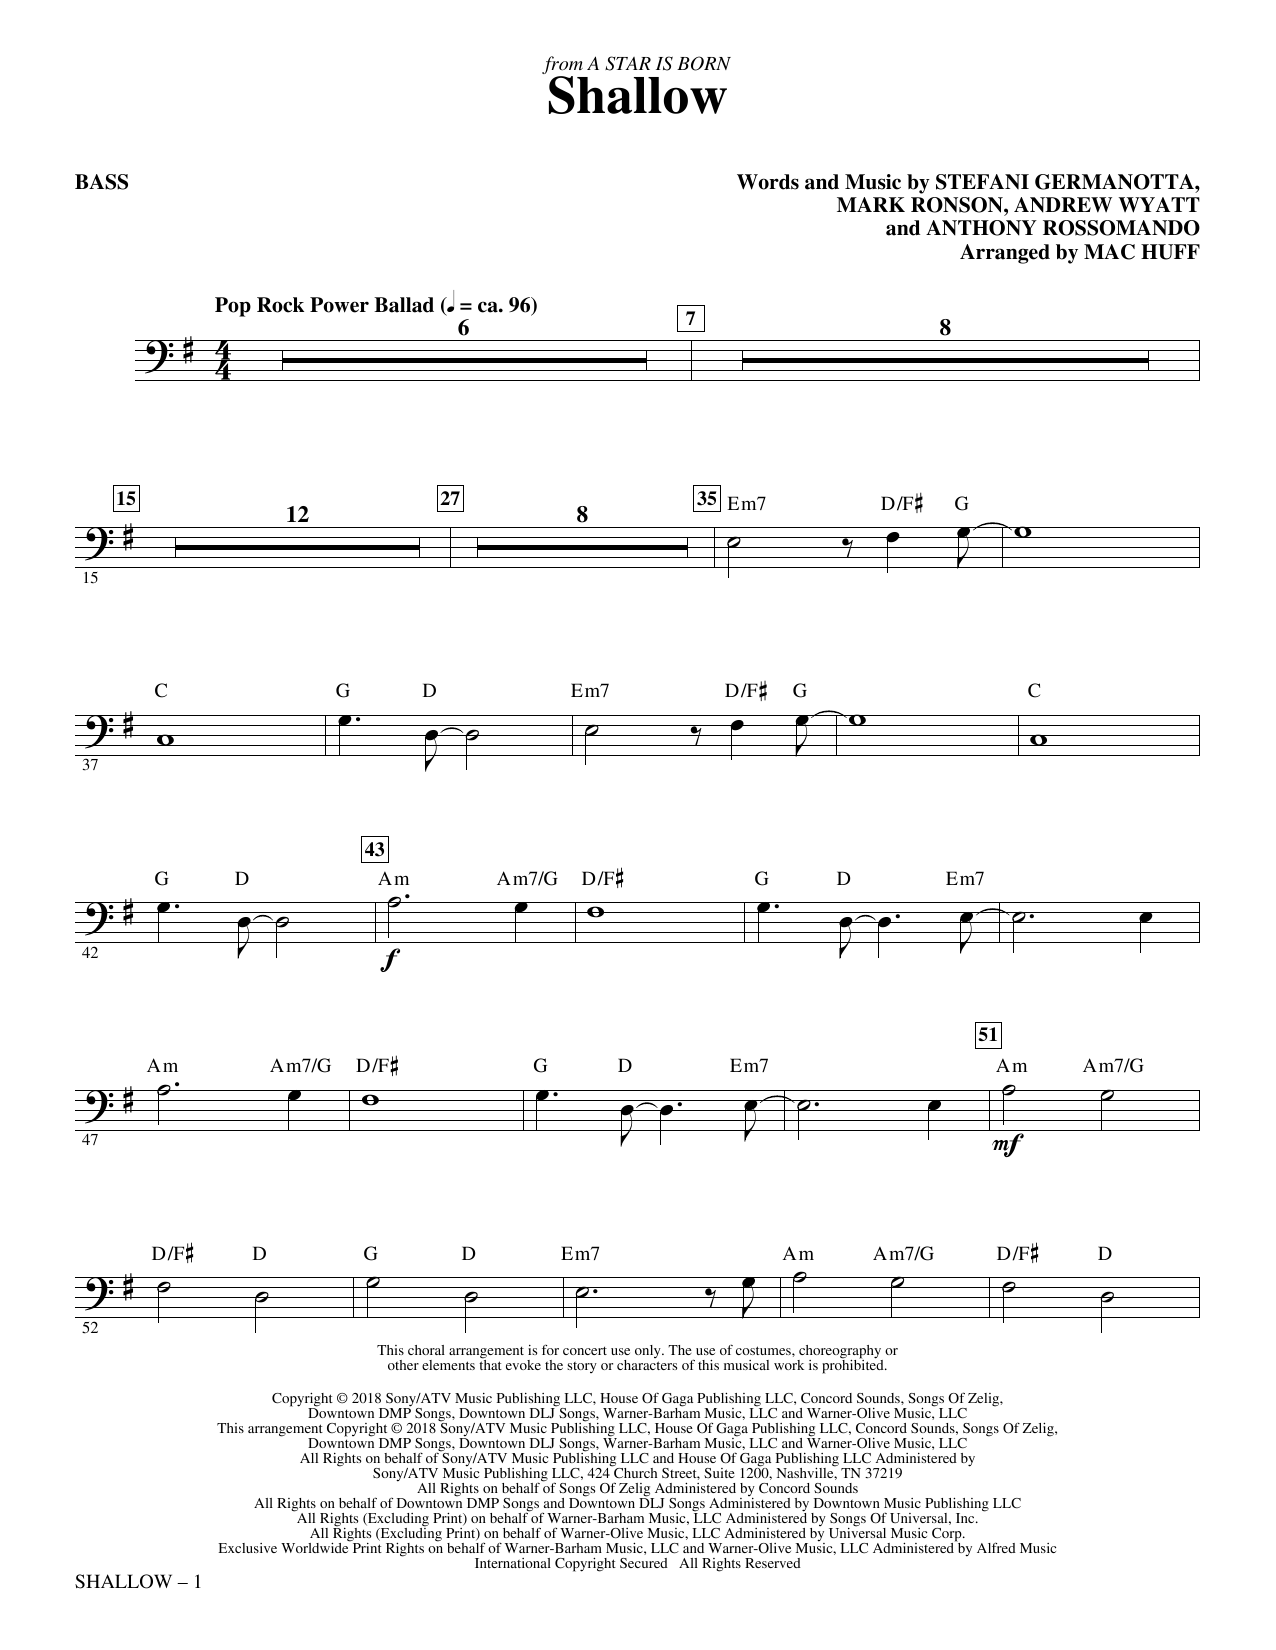 Lady Gaga & Bradley Cooper 'Shallow (from A Star Is Born) (arr  Mac Huff) -  Bass' Sheet Music Notes, Chords   Download Printable Choral Instrumental